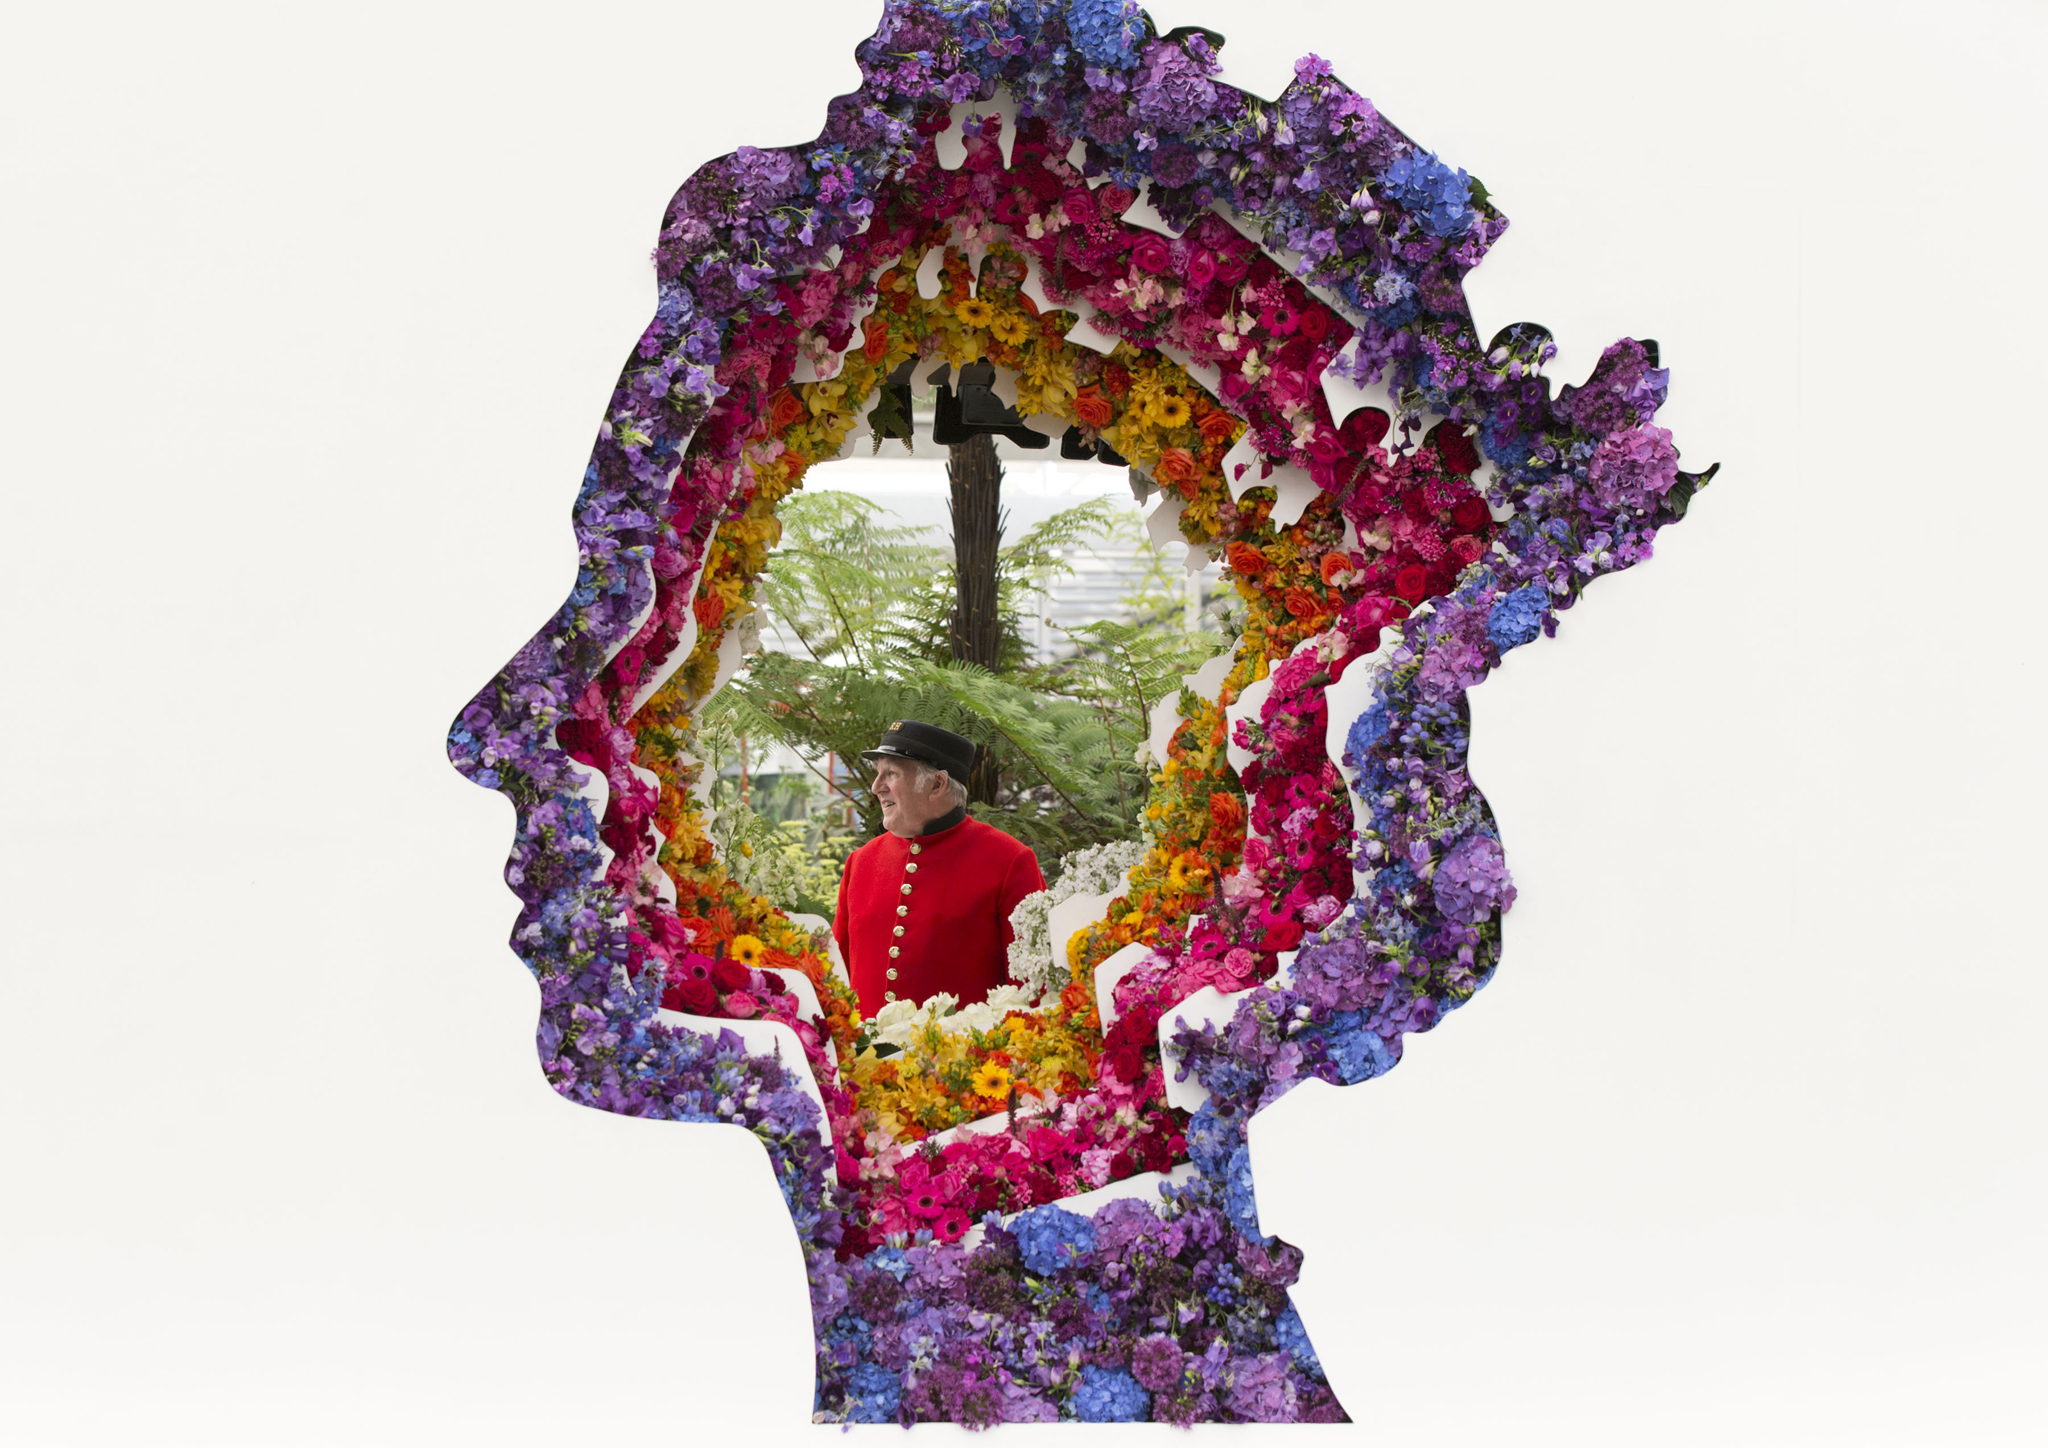 A Chelsea Pensioner is seen through New Covent Garden Flower Market's tribute to Queen Elizabeth II - a three metre high profile of the Queen made from over 5,000 cut flowers, during a press day ahead of the Chelsea Flower Show at the Royal Hospital Chelsea in London. PRESS ASSOCIATION Photo. Picture date: Monday May 23, 2016. See PA story CONSUMER Chelsea. Photo credit should read: Yui Mok/PA Wire